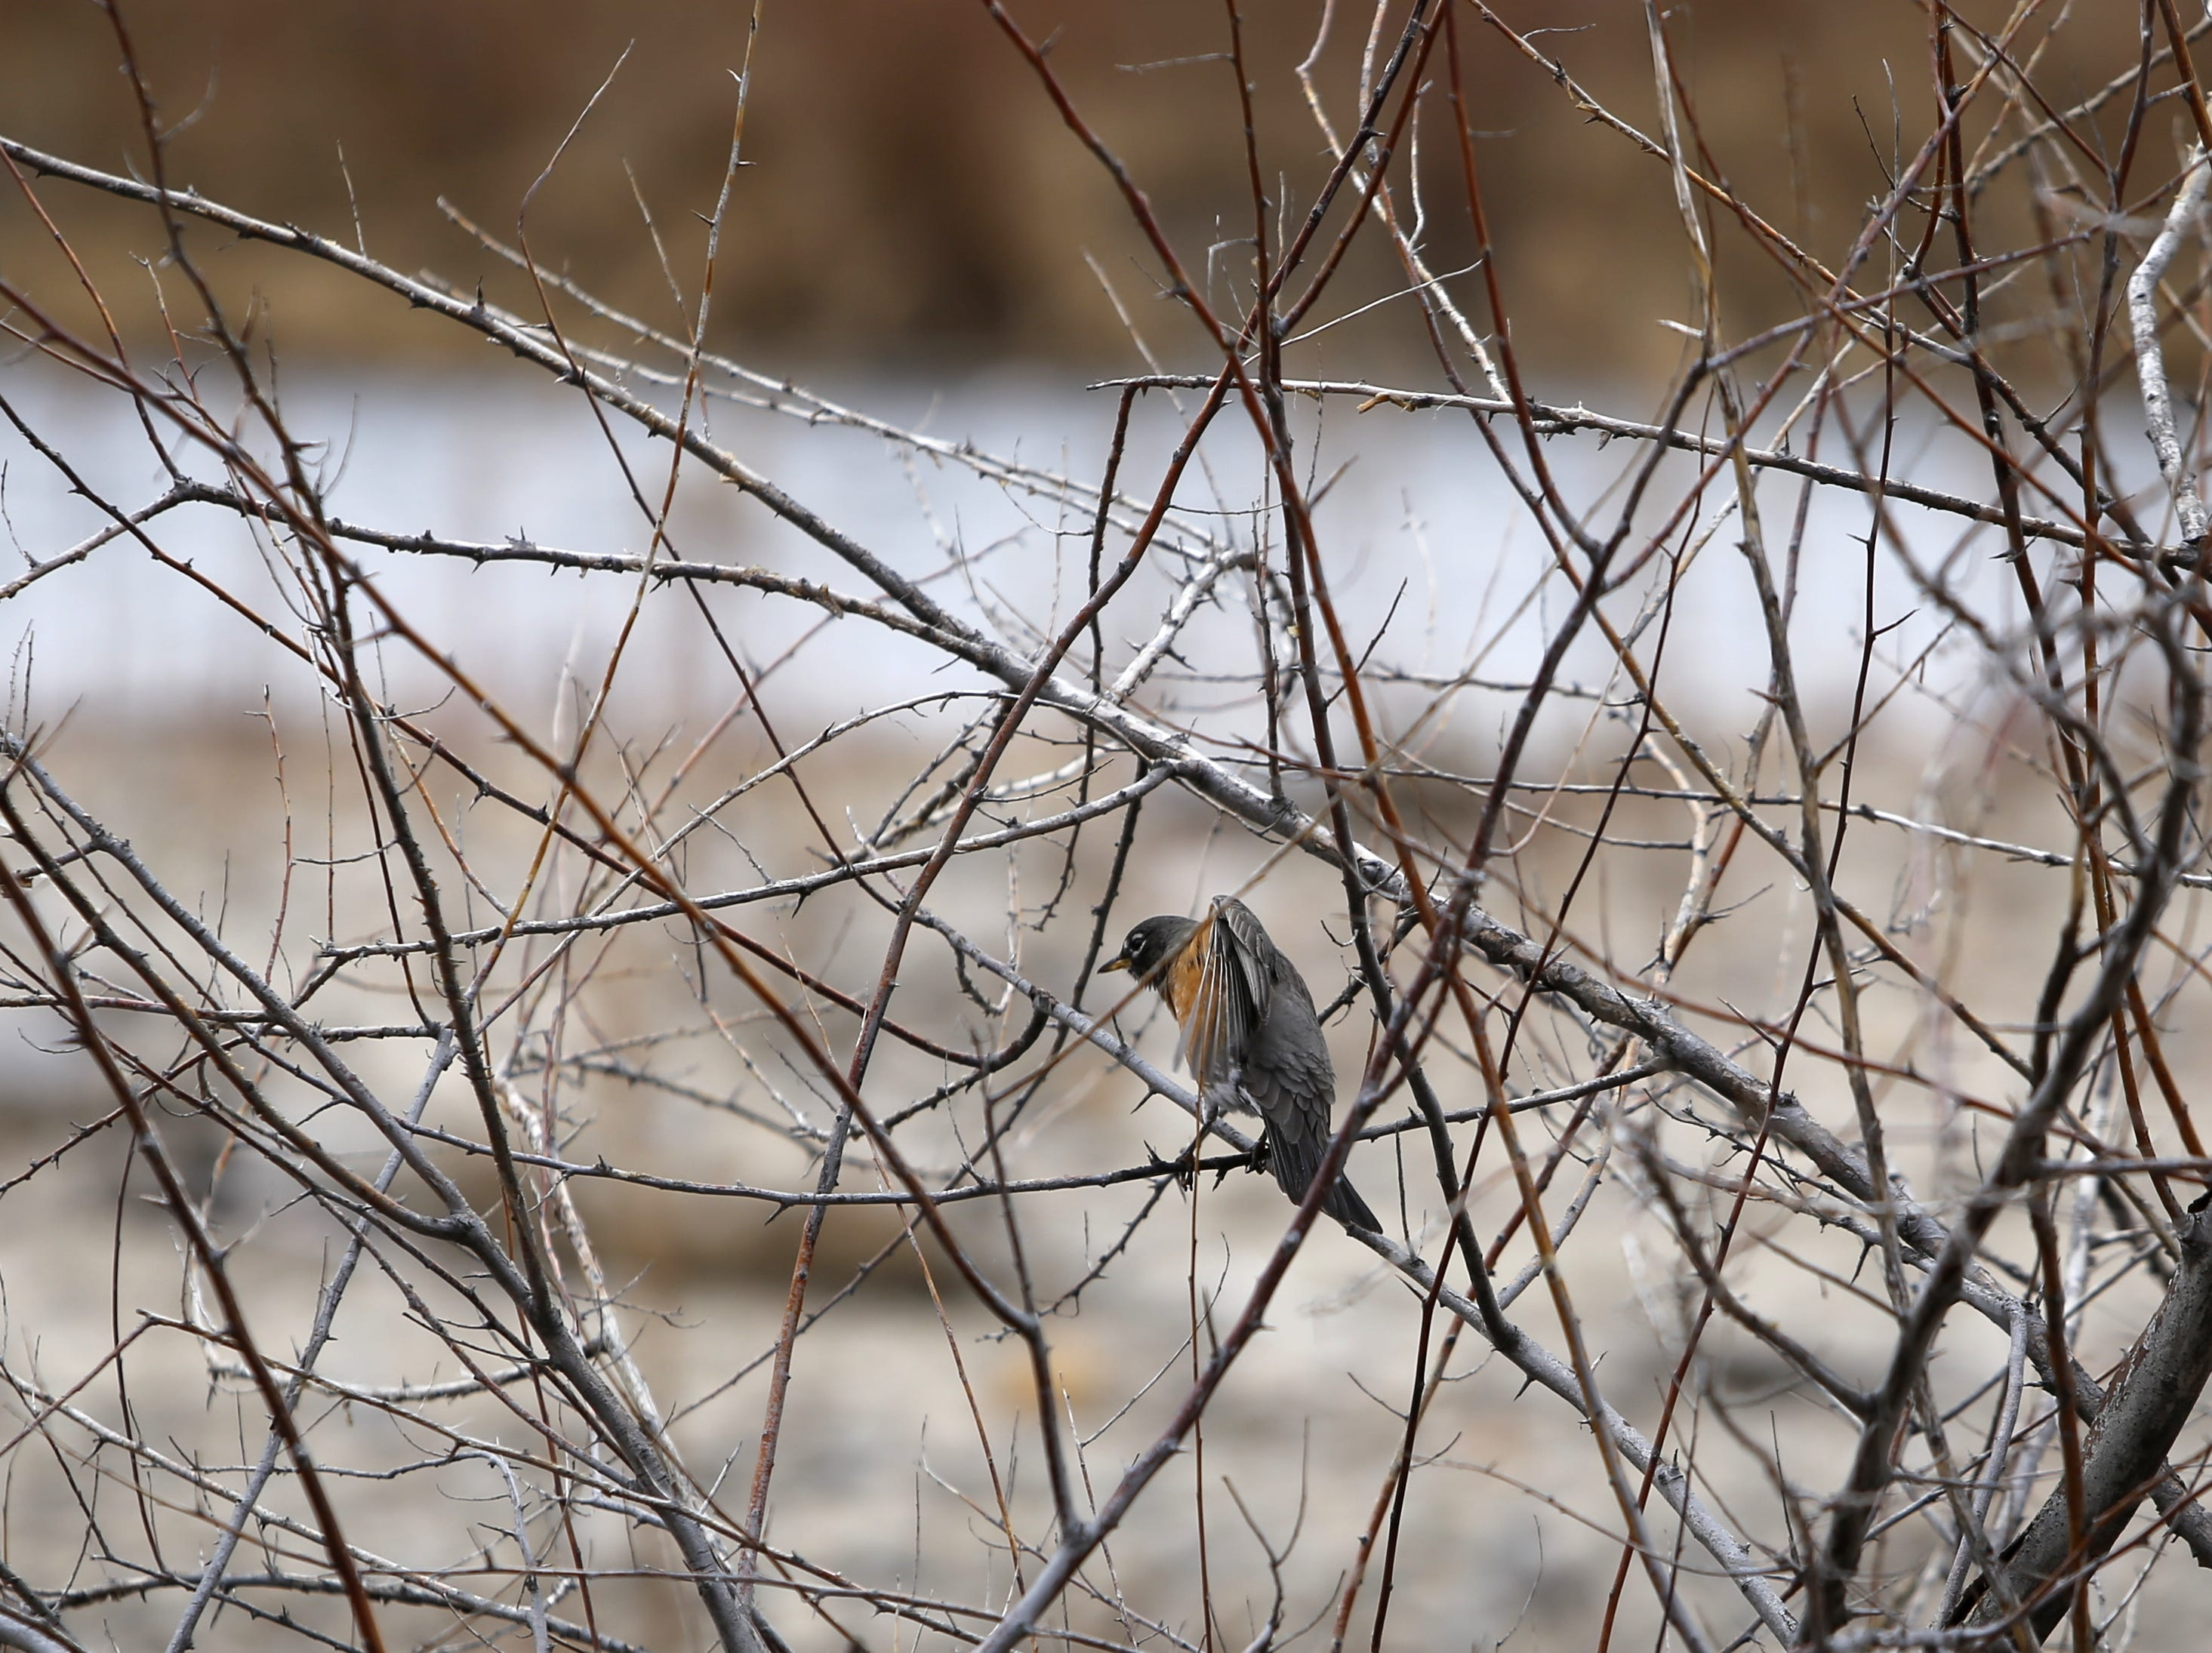 A robin perches in a bush, Monday, Dec. 17, 2018, next to the confluence of the Animas and San Juan rivers in Farmington.